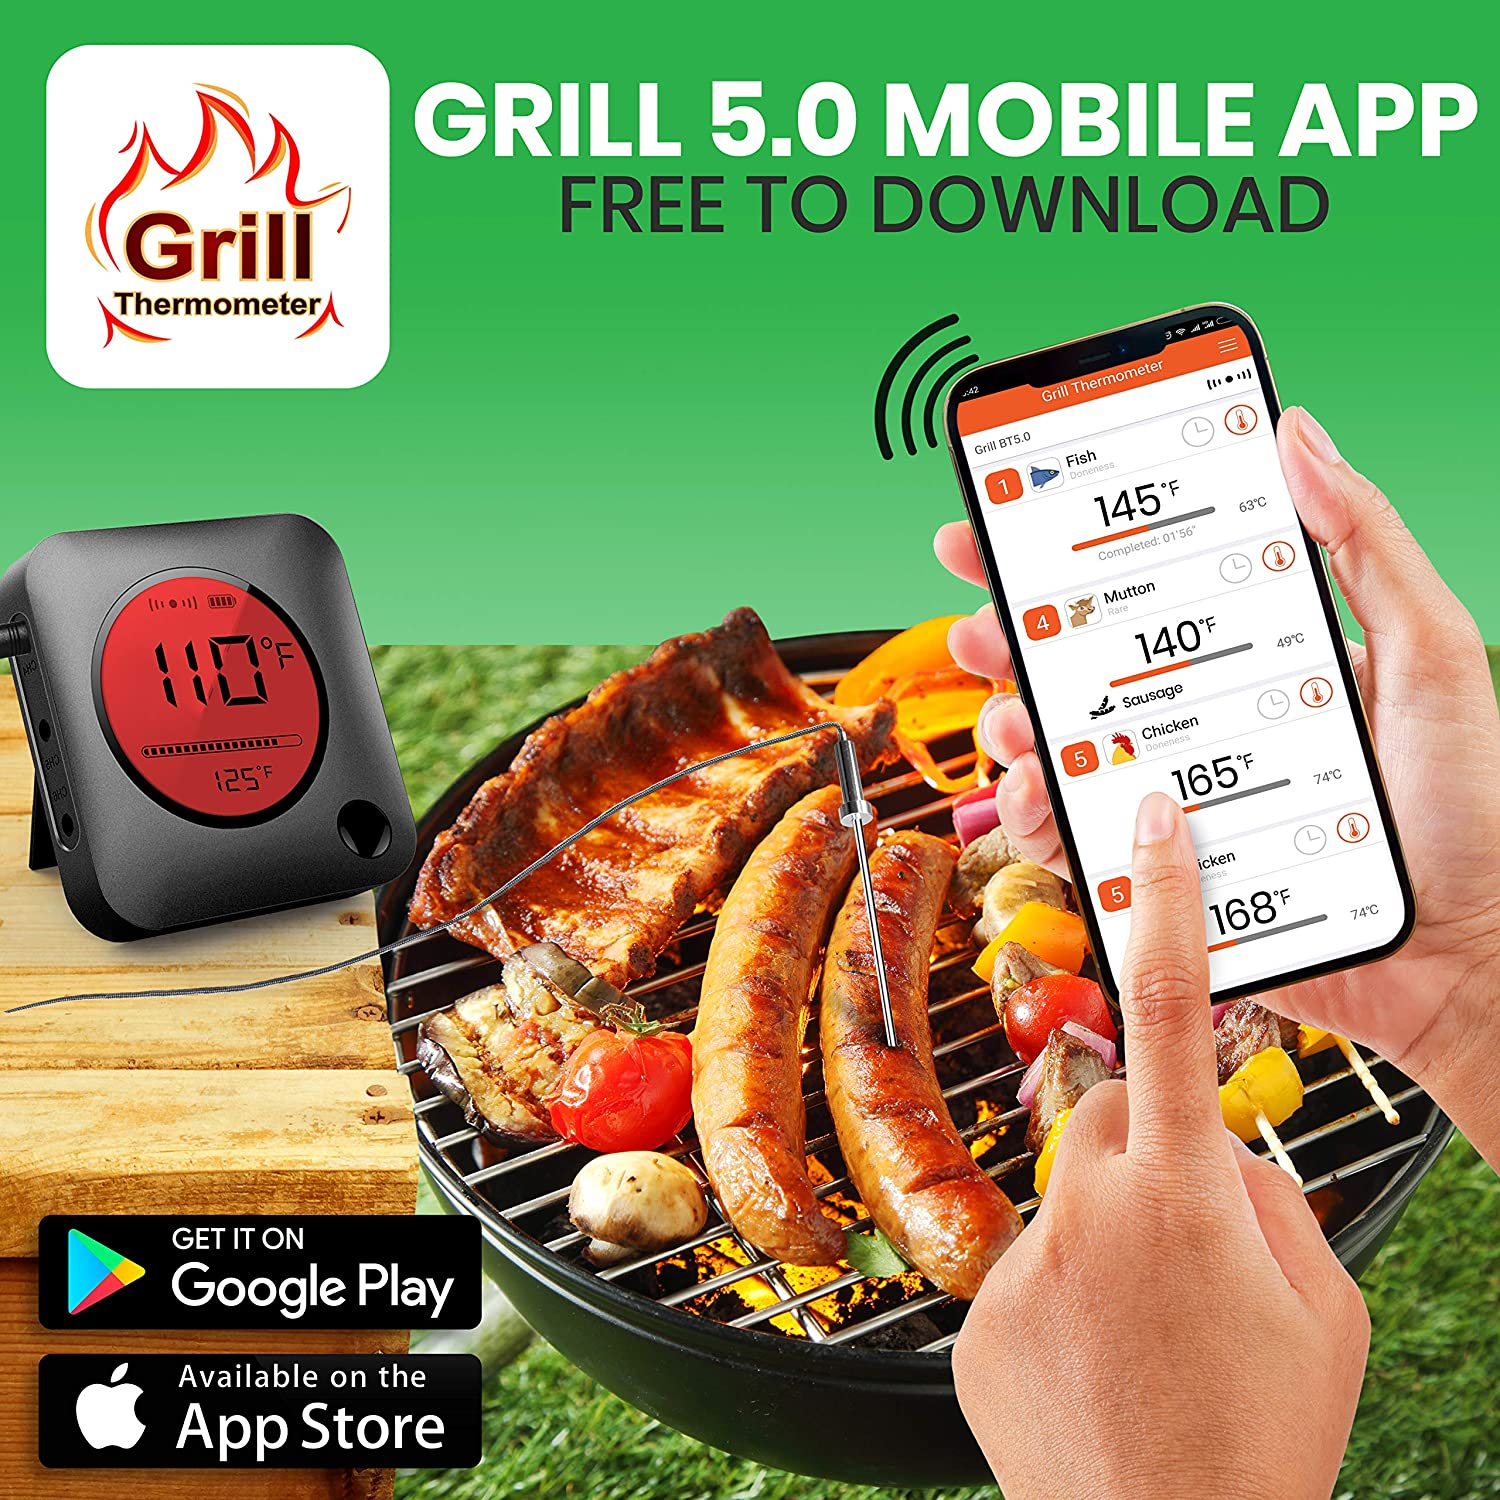 Gas Charcoal BBQ Smoker Temperature Monitoring NutriChef Smart Bluetooth BBQ Thermometer Zip Travel Case Upgraded Stainless Probe w// LCD Display Wireless Remote Alert Android iPhone PWIRBBQ299